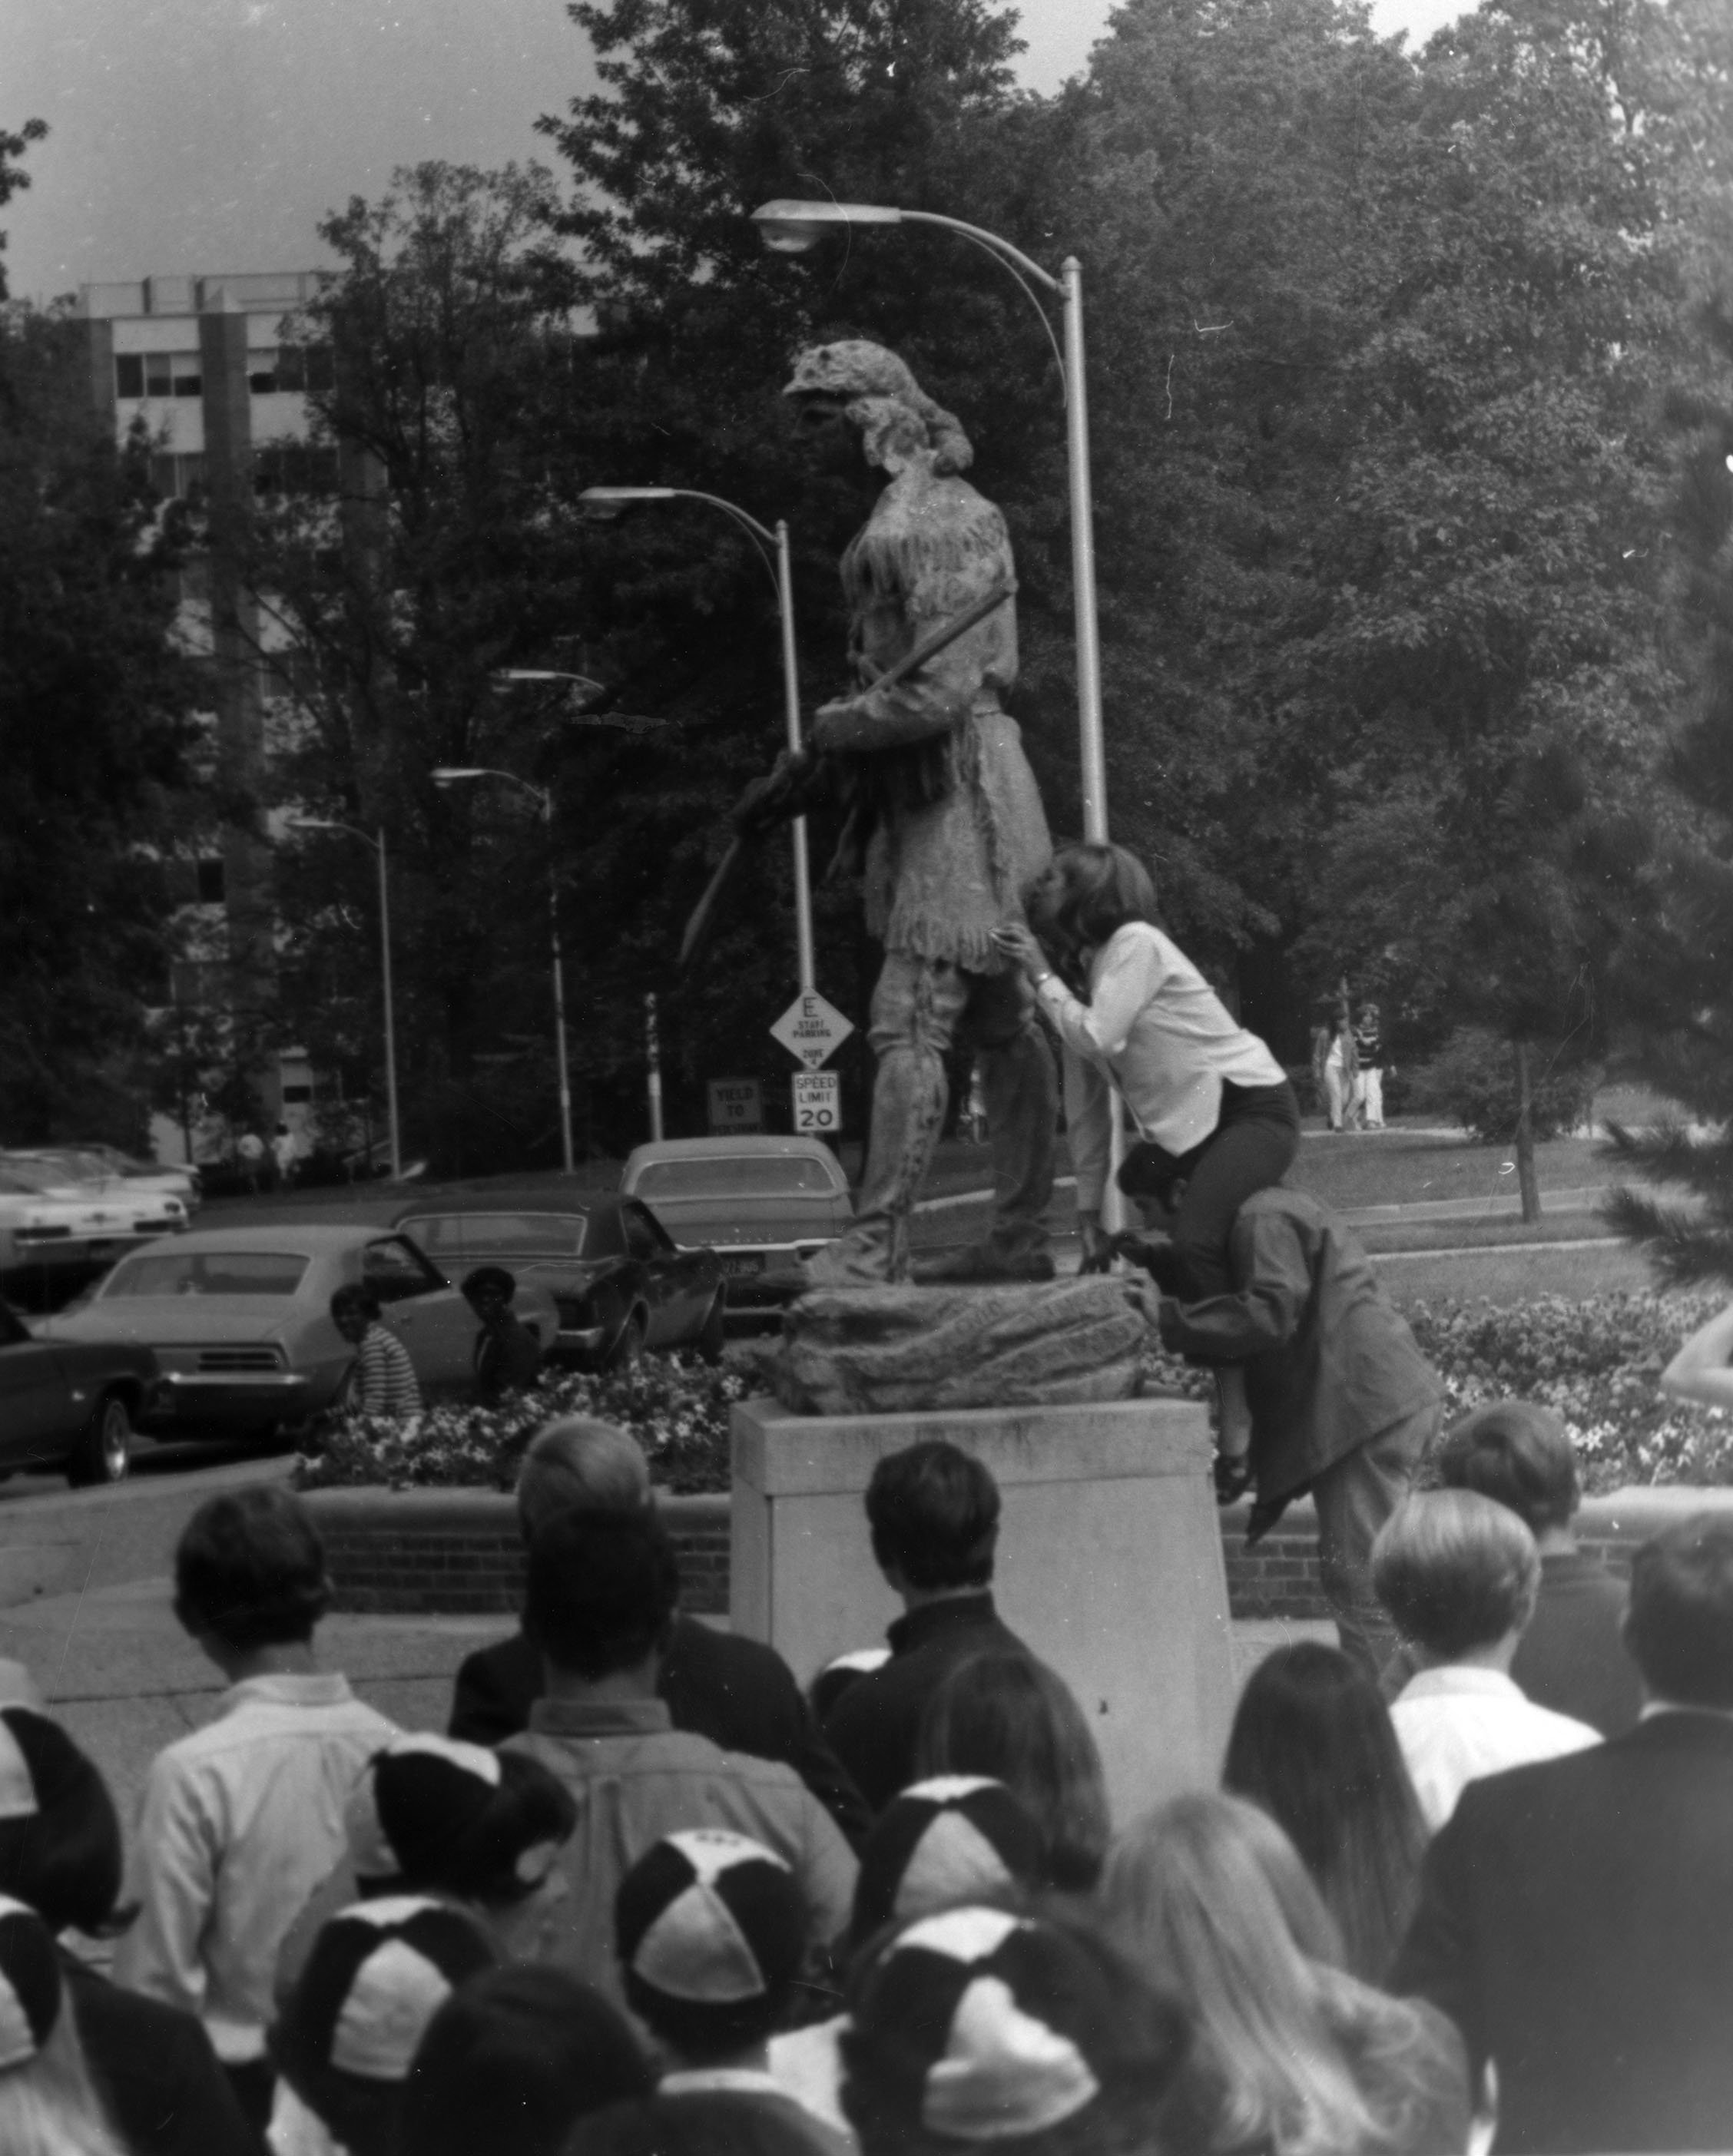 Freshman girl kissing the butt of the Daniel Boone statue during rat court, a hazing of freshman, 1969. EKU Photo Collection.